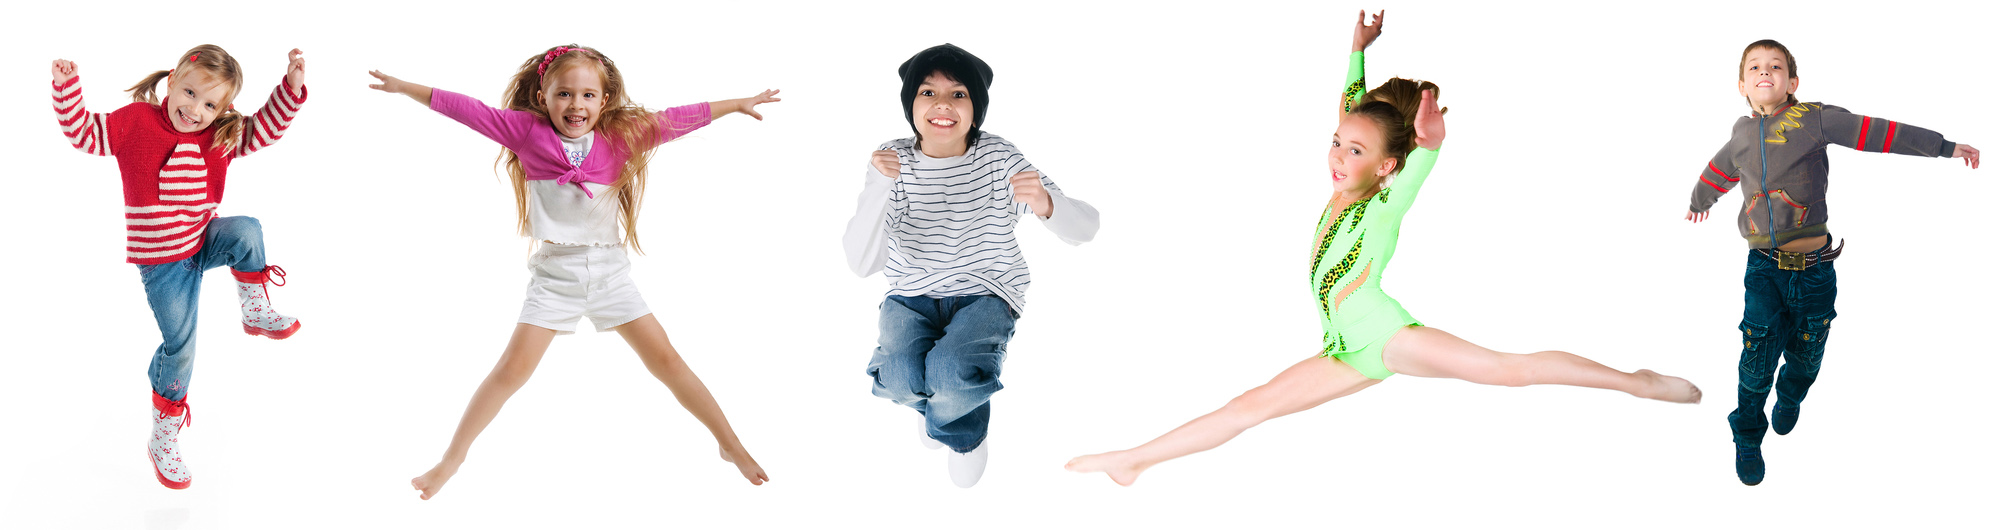 Kids showing different dance options